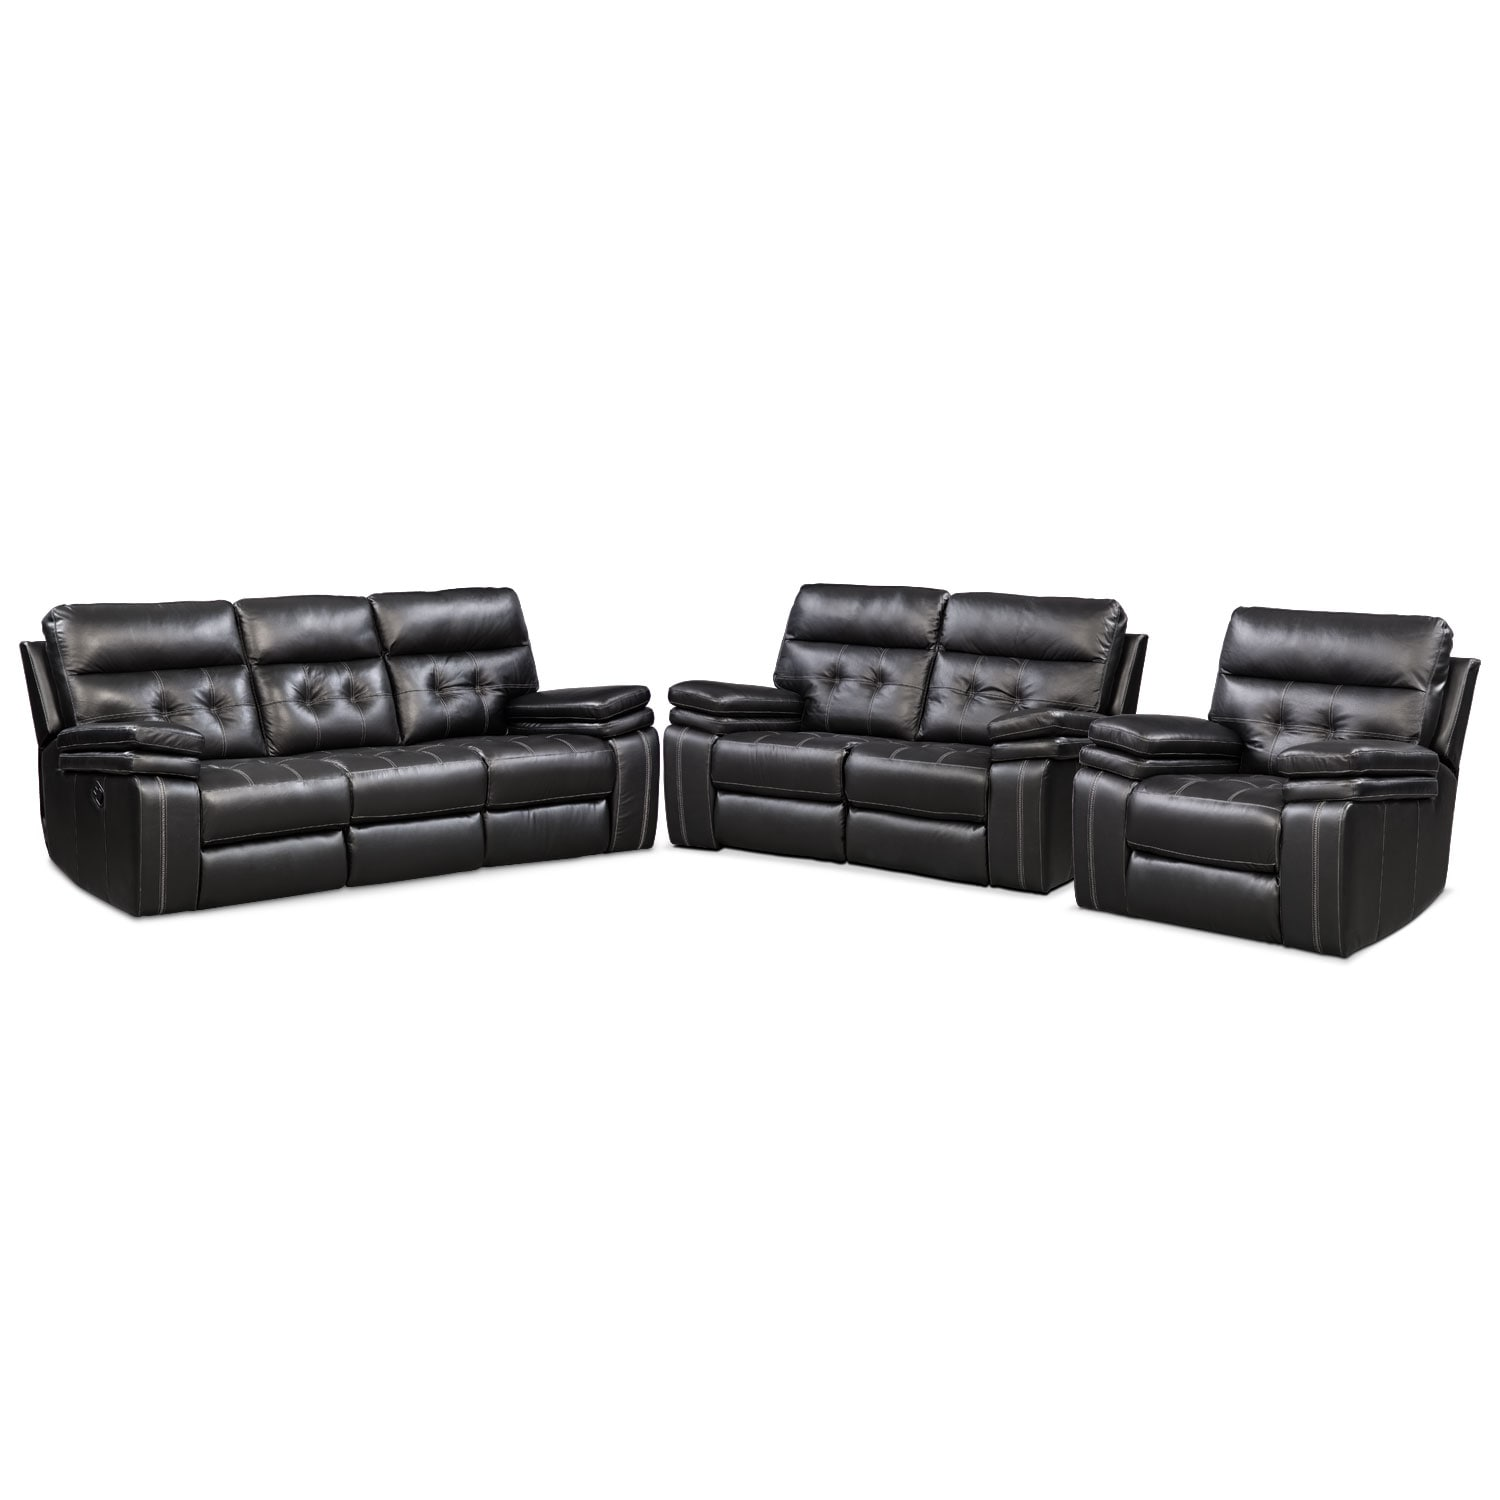 Living Room Furniture - Brisco Black 3 Pc. Manual Reclining Living Room